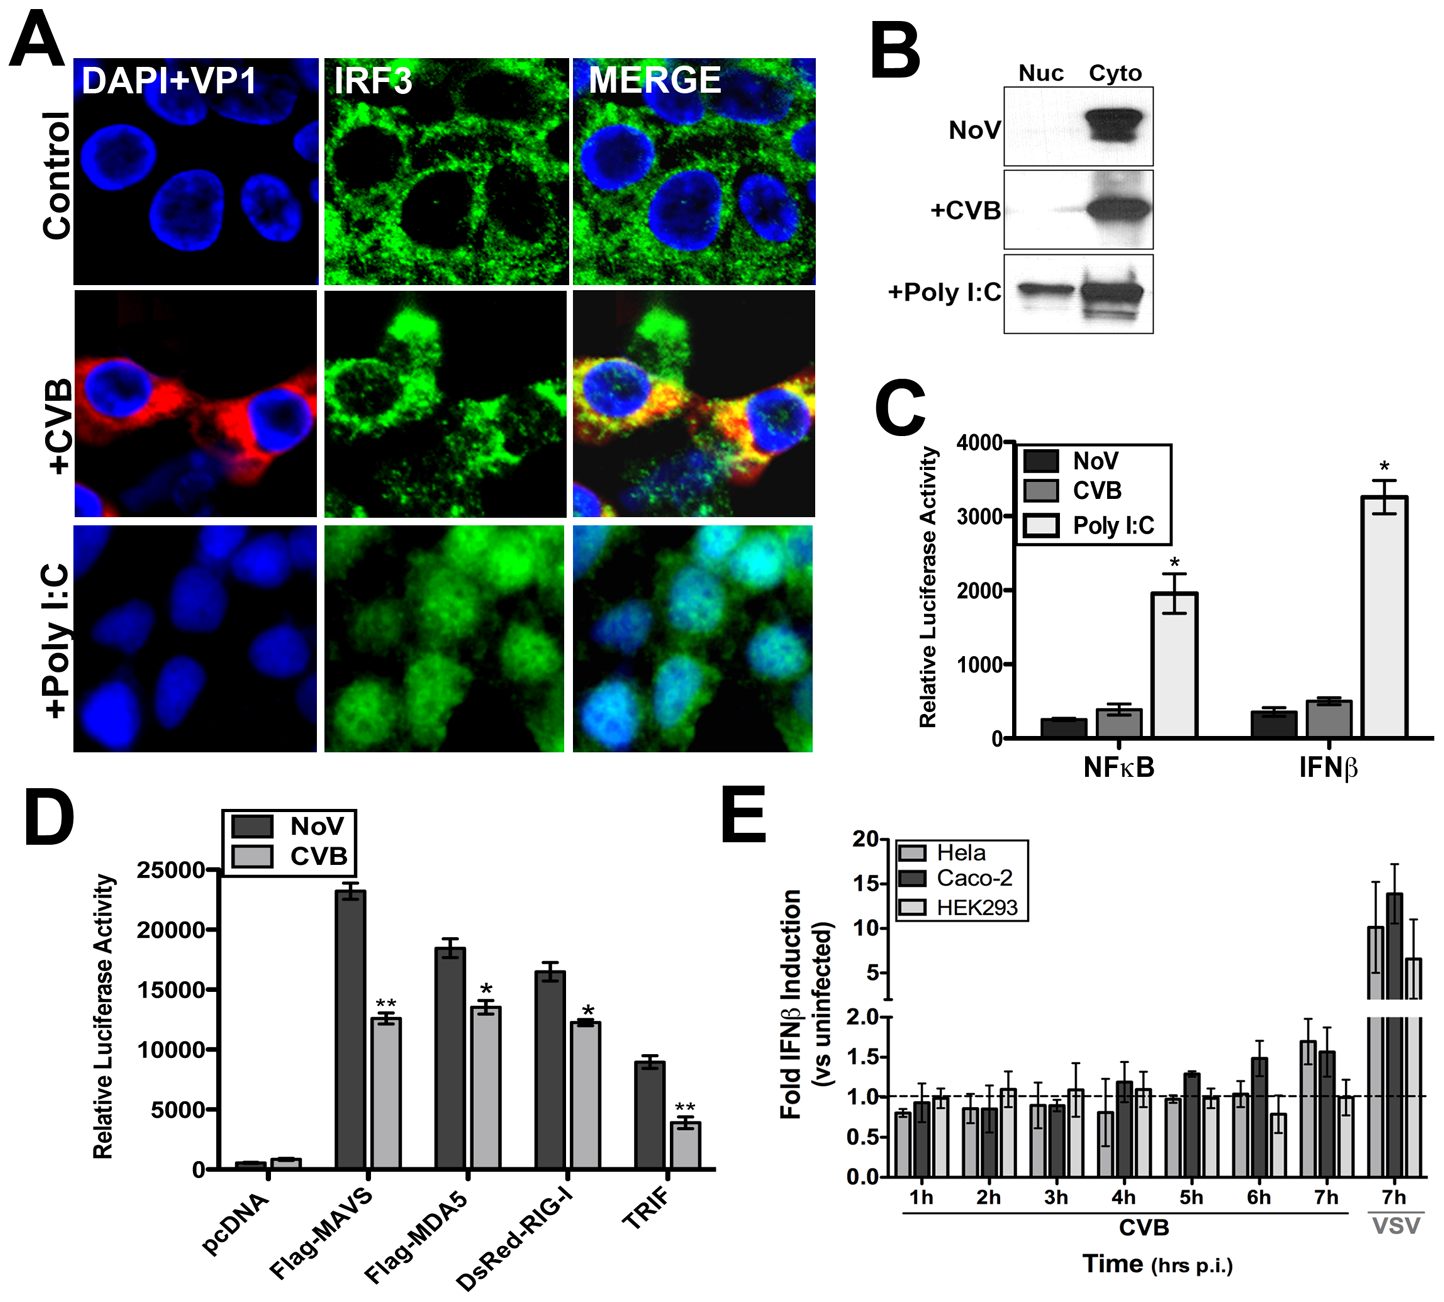 CVB3 infection does not induce significant type I IFN responses.